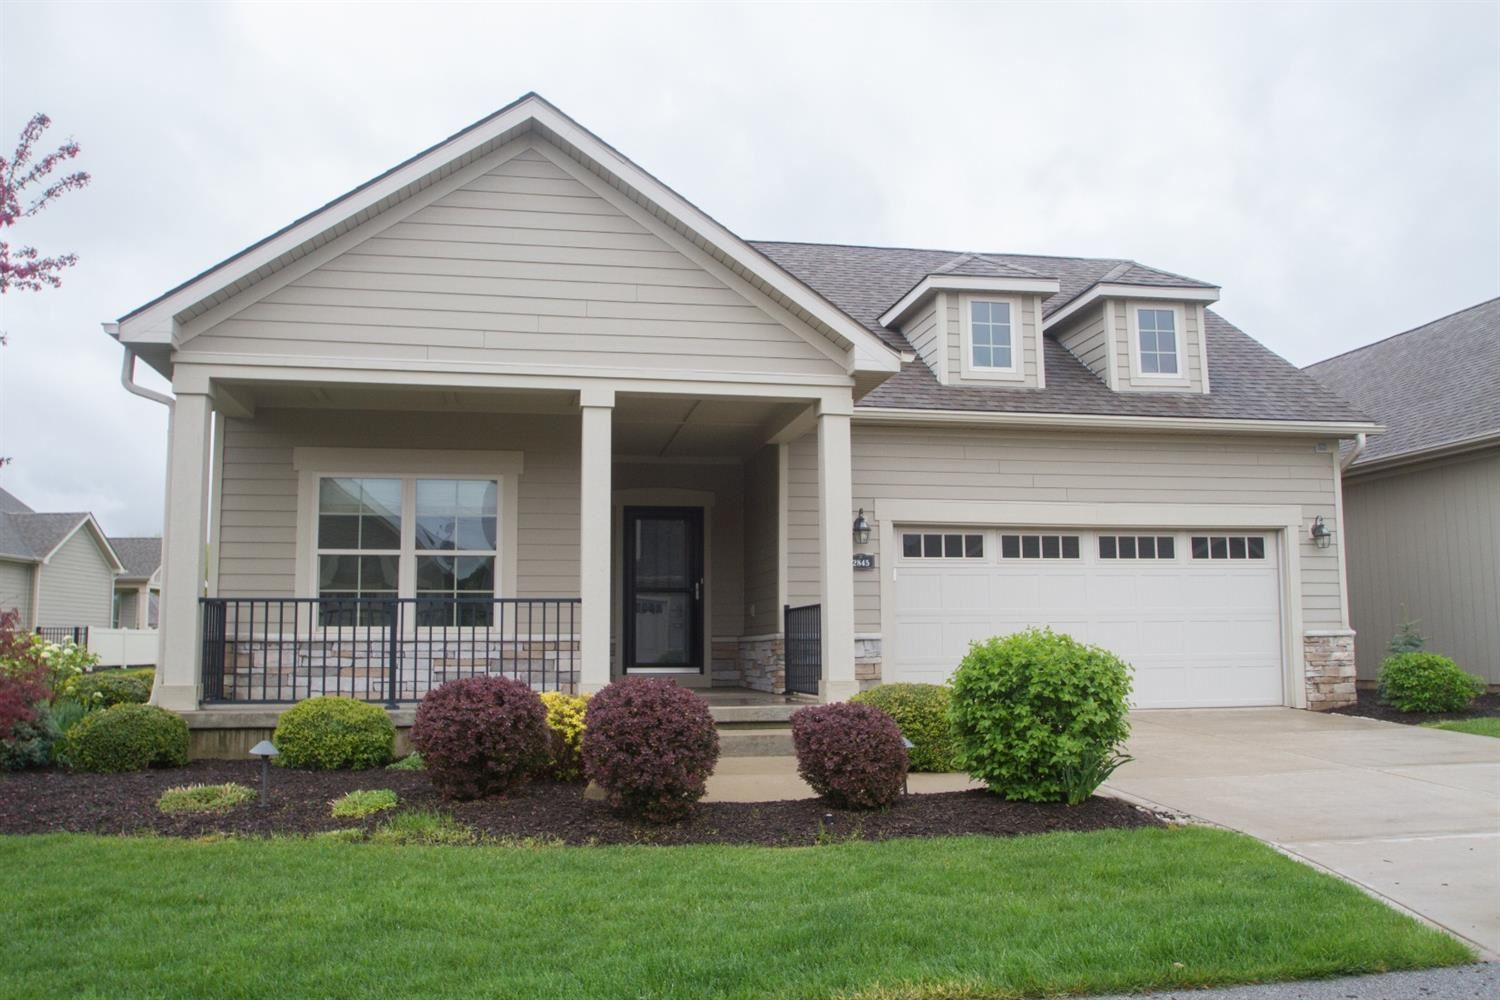 2845 Rustic Crooked Circle #2845, Valparaiso, IN 46385 - #: 474629